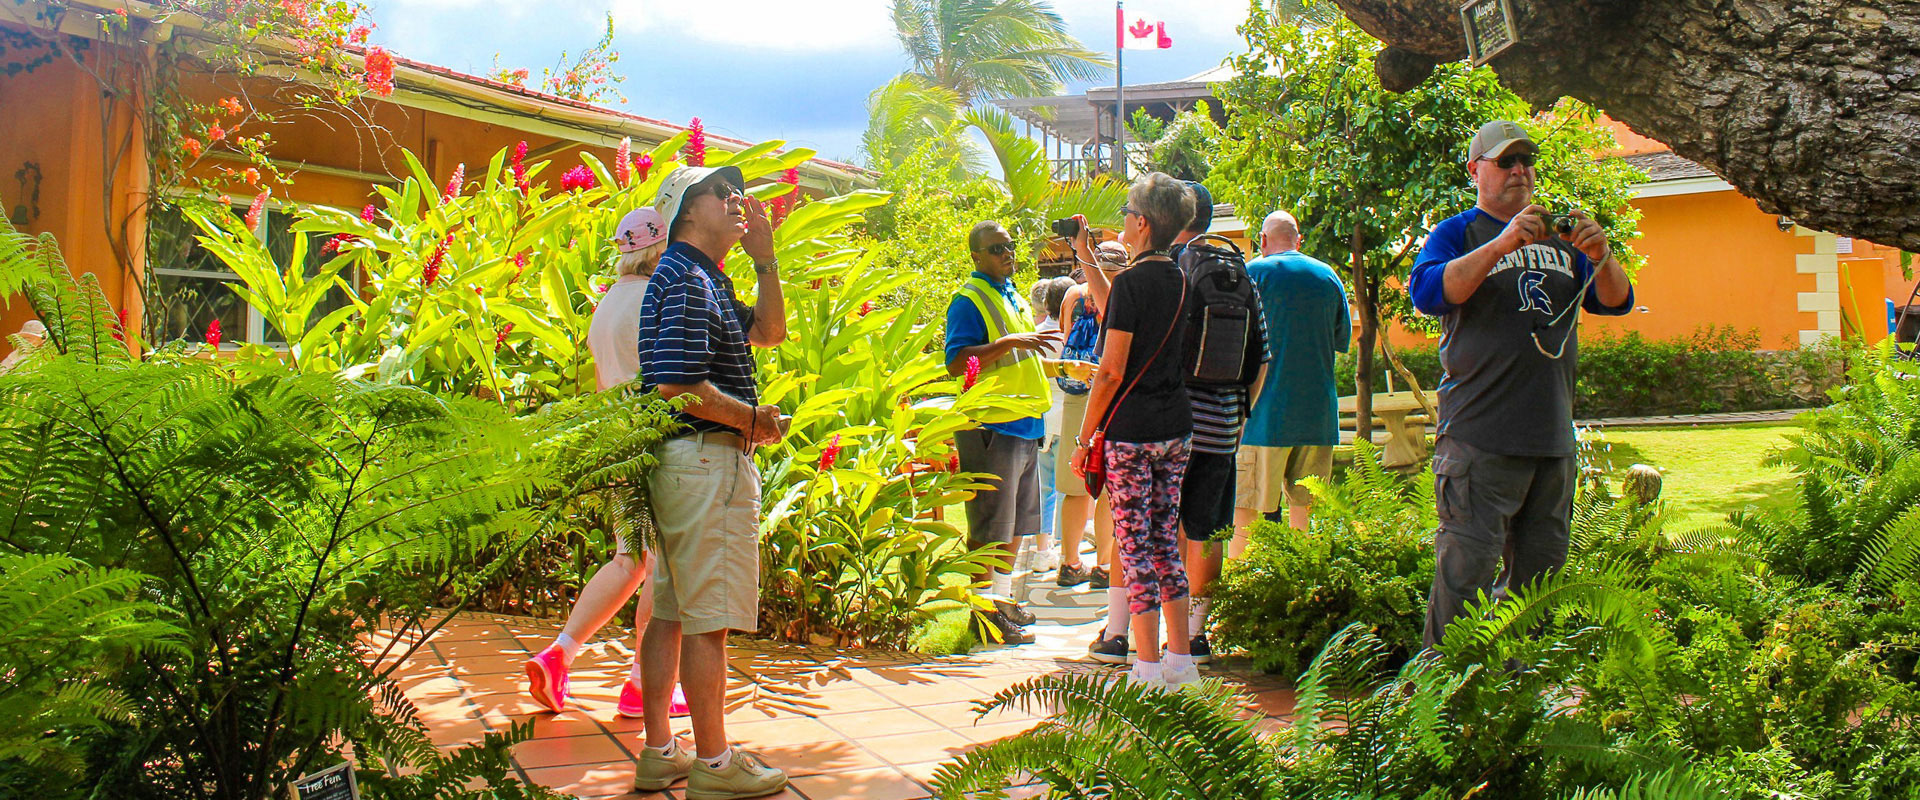 Group on Segway Tour in Historic Basseterre St. Kitts